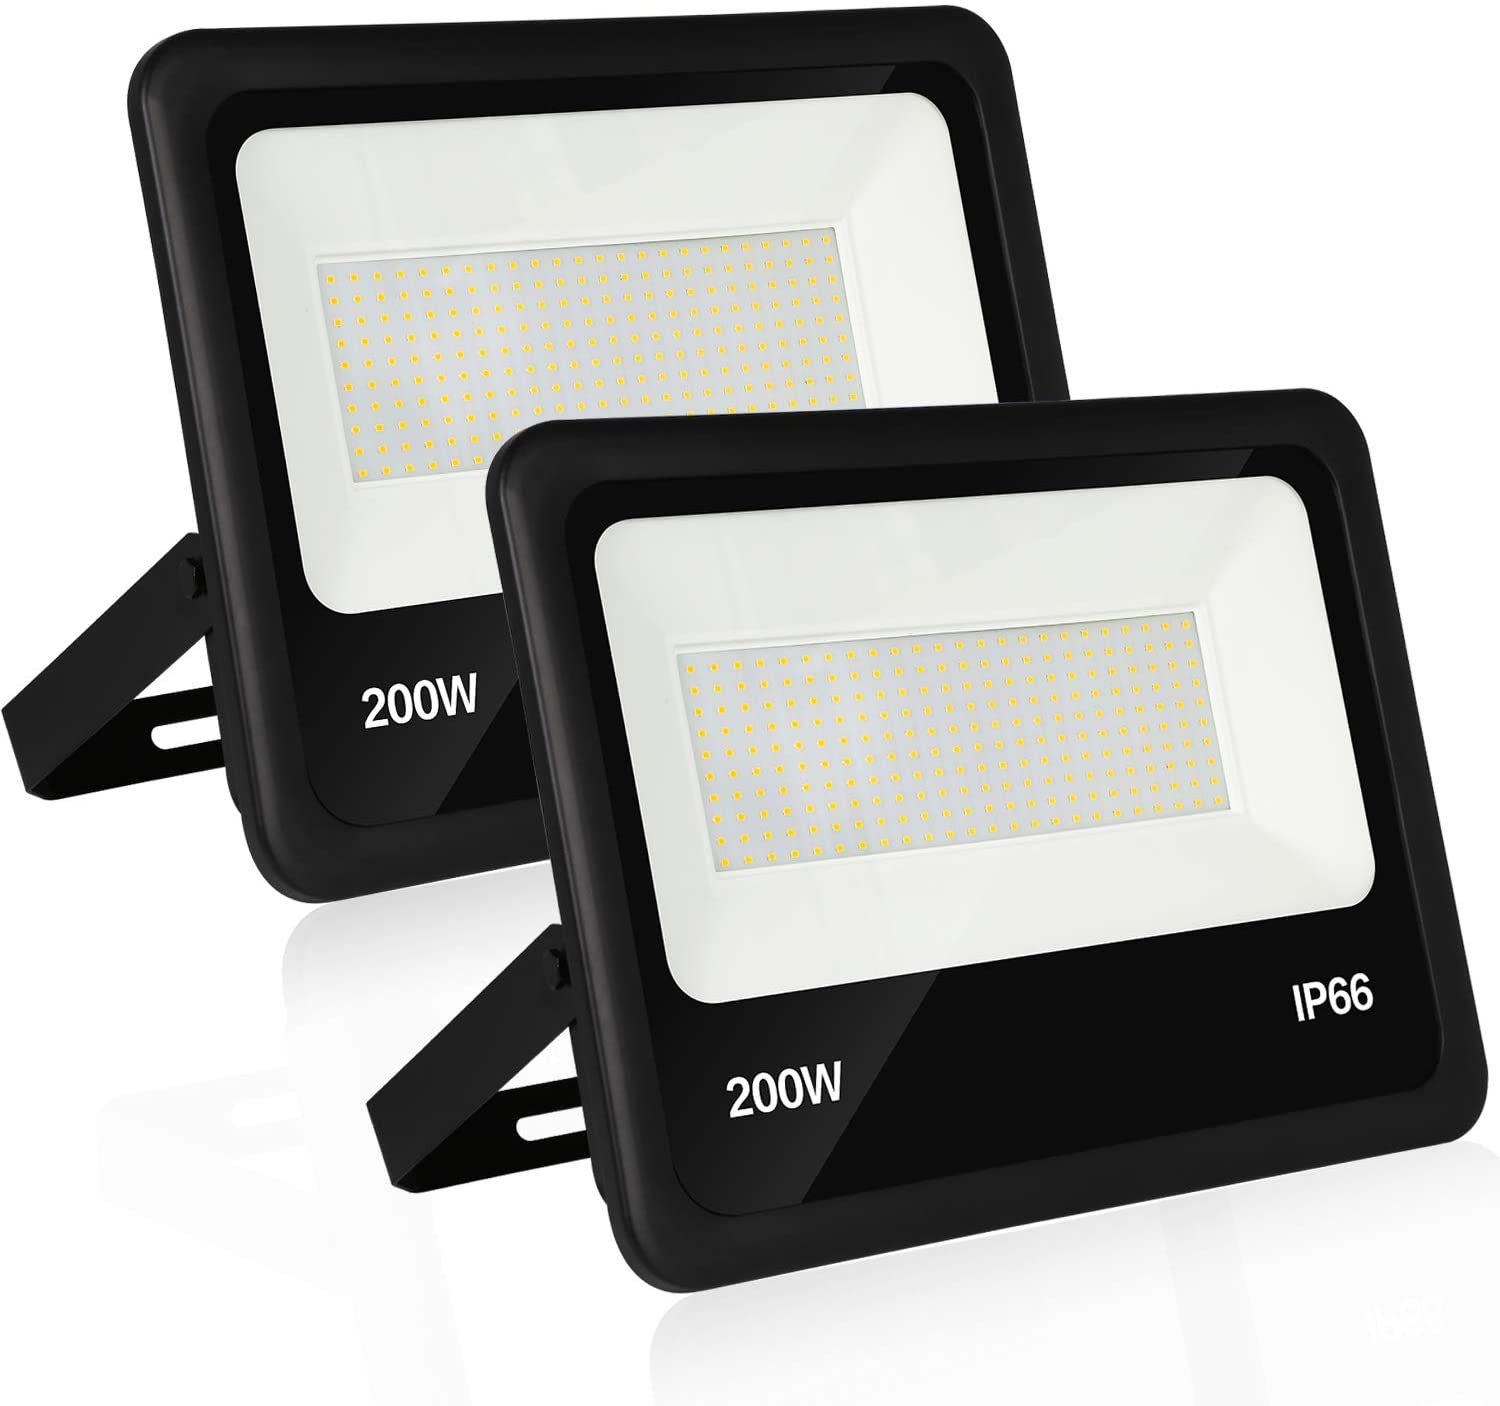 Hykolity 200W LED Security Flood Light with Photocell,100-277V 22000lm Dusk to Dawn Outdoor Commercial LED Area Light, Weatherproof Parking Lot Lighting Fixture,5000K